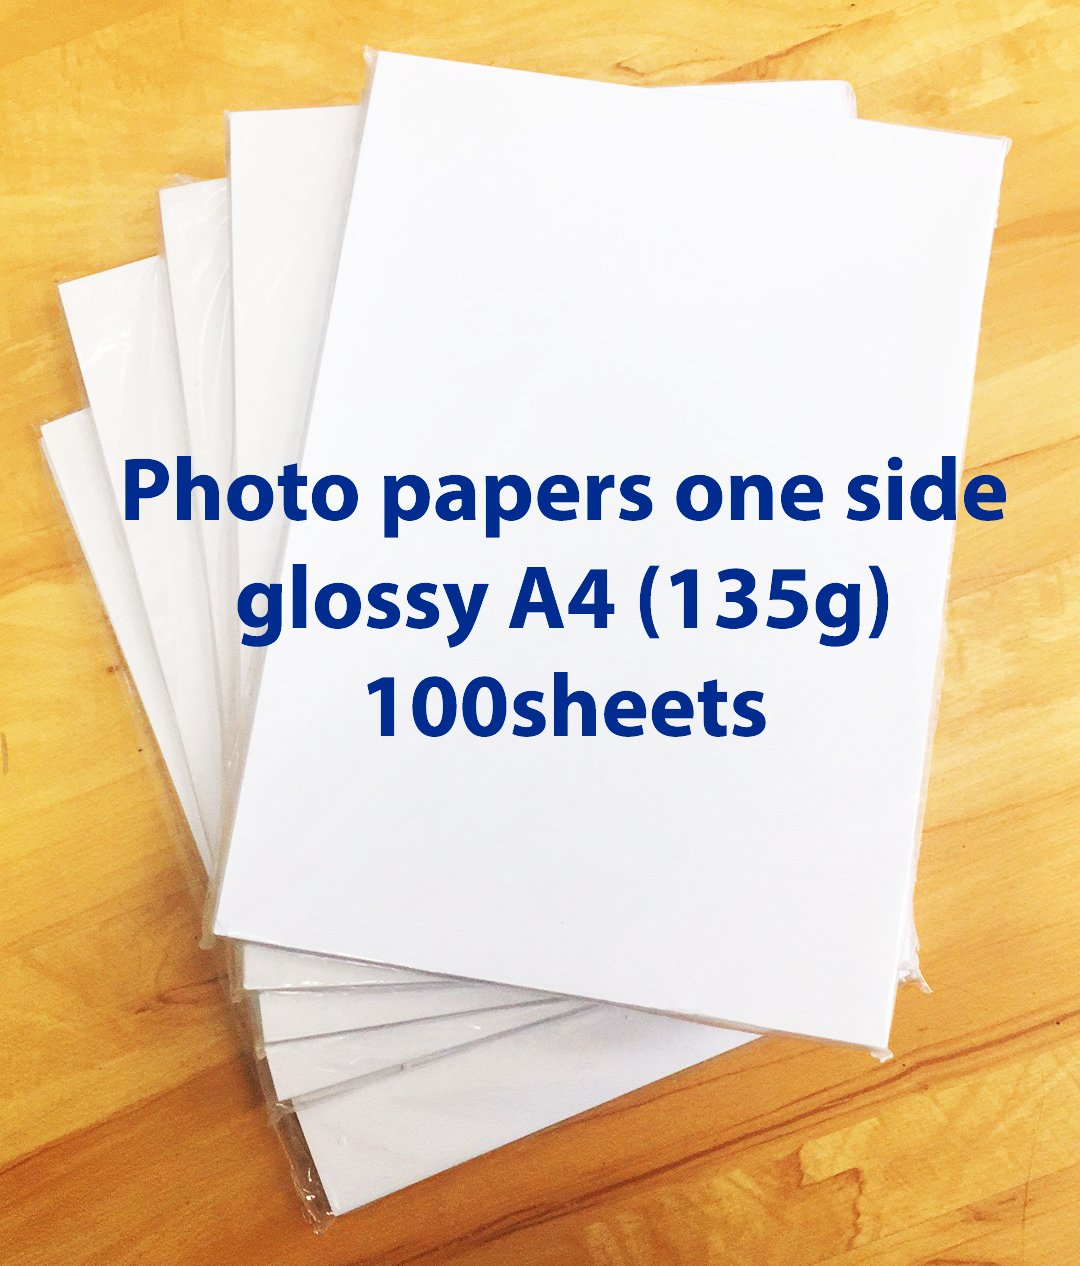 ChiButtons Photo papers one side glossy A4 (135g) 100 sheets (Specially for button maker use)